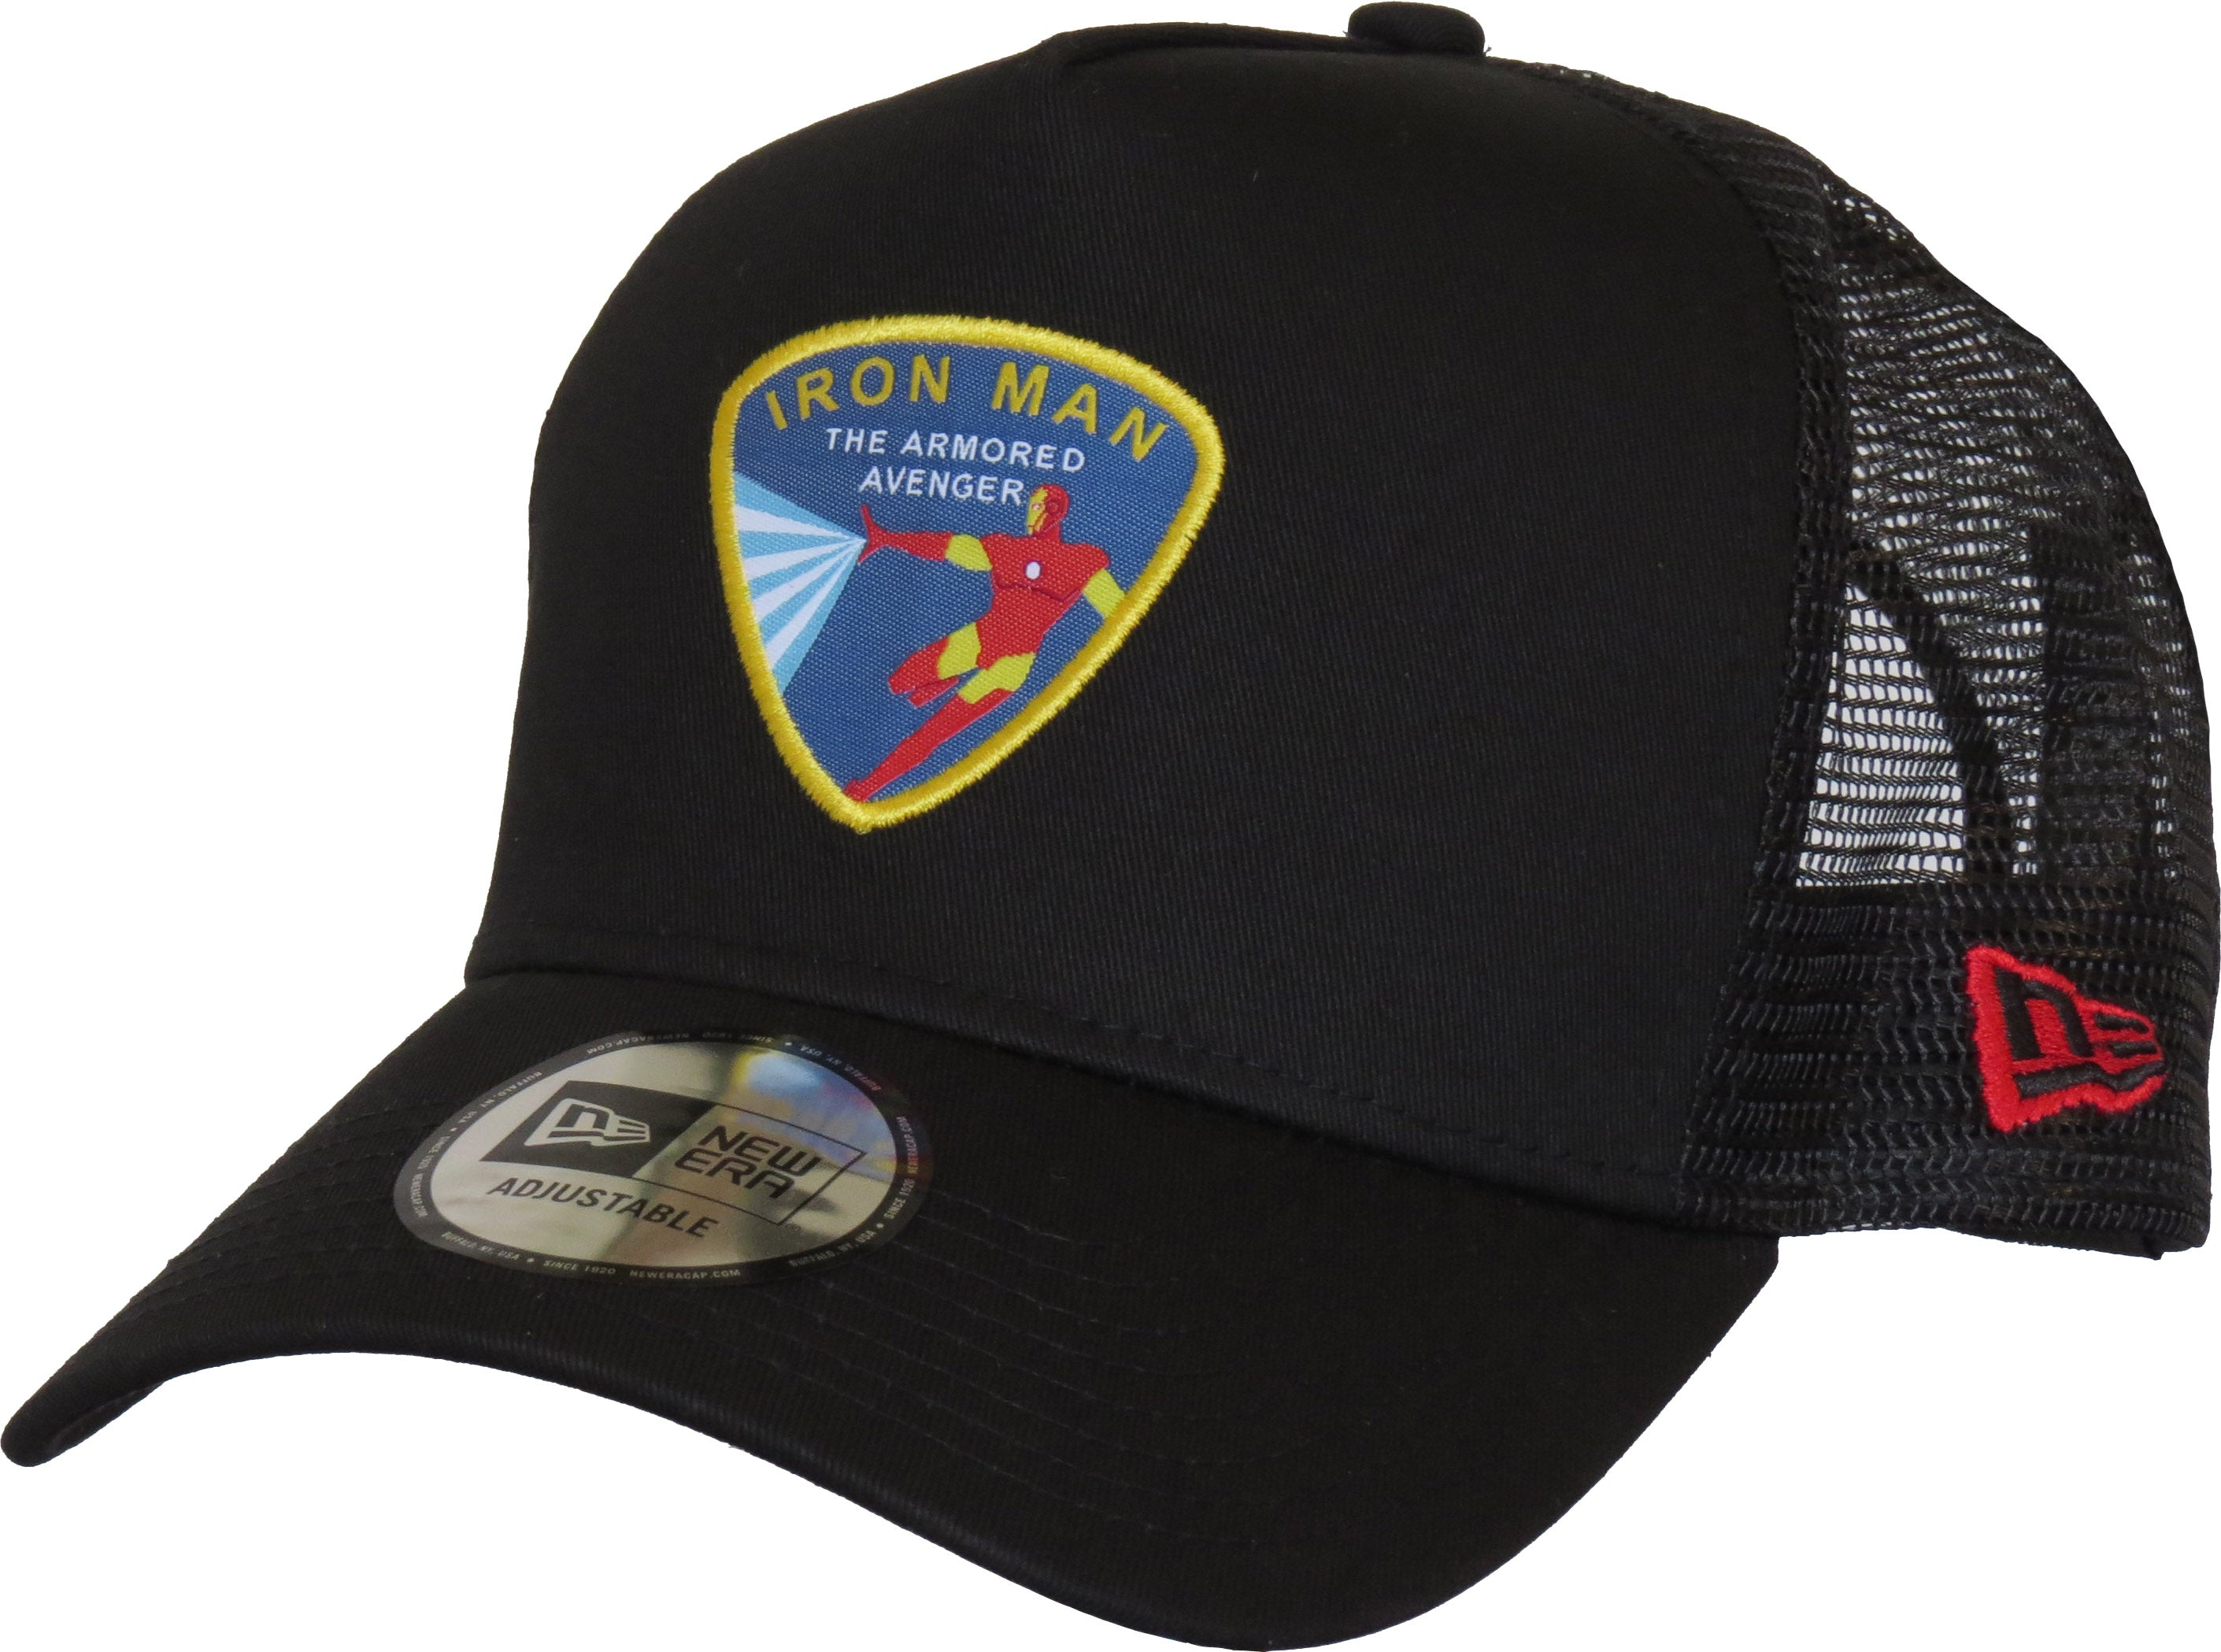 clearance sale reasonably priced look out for Iron Man Marvel Avengers New Era Black Trucker Cap – lovemycap